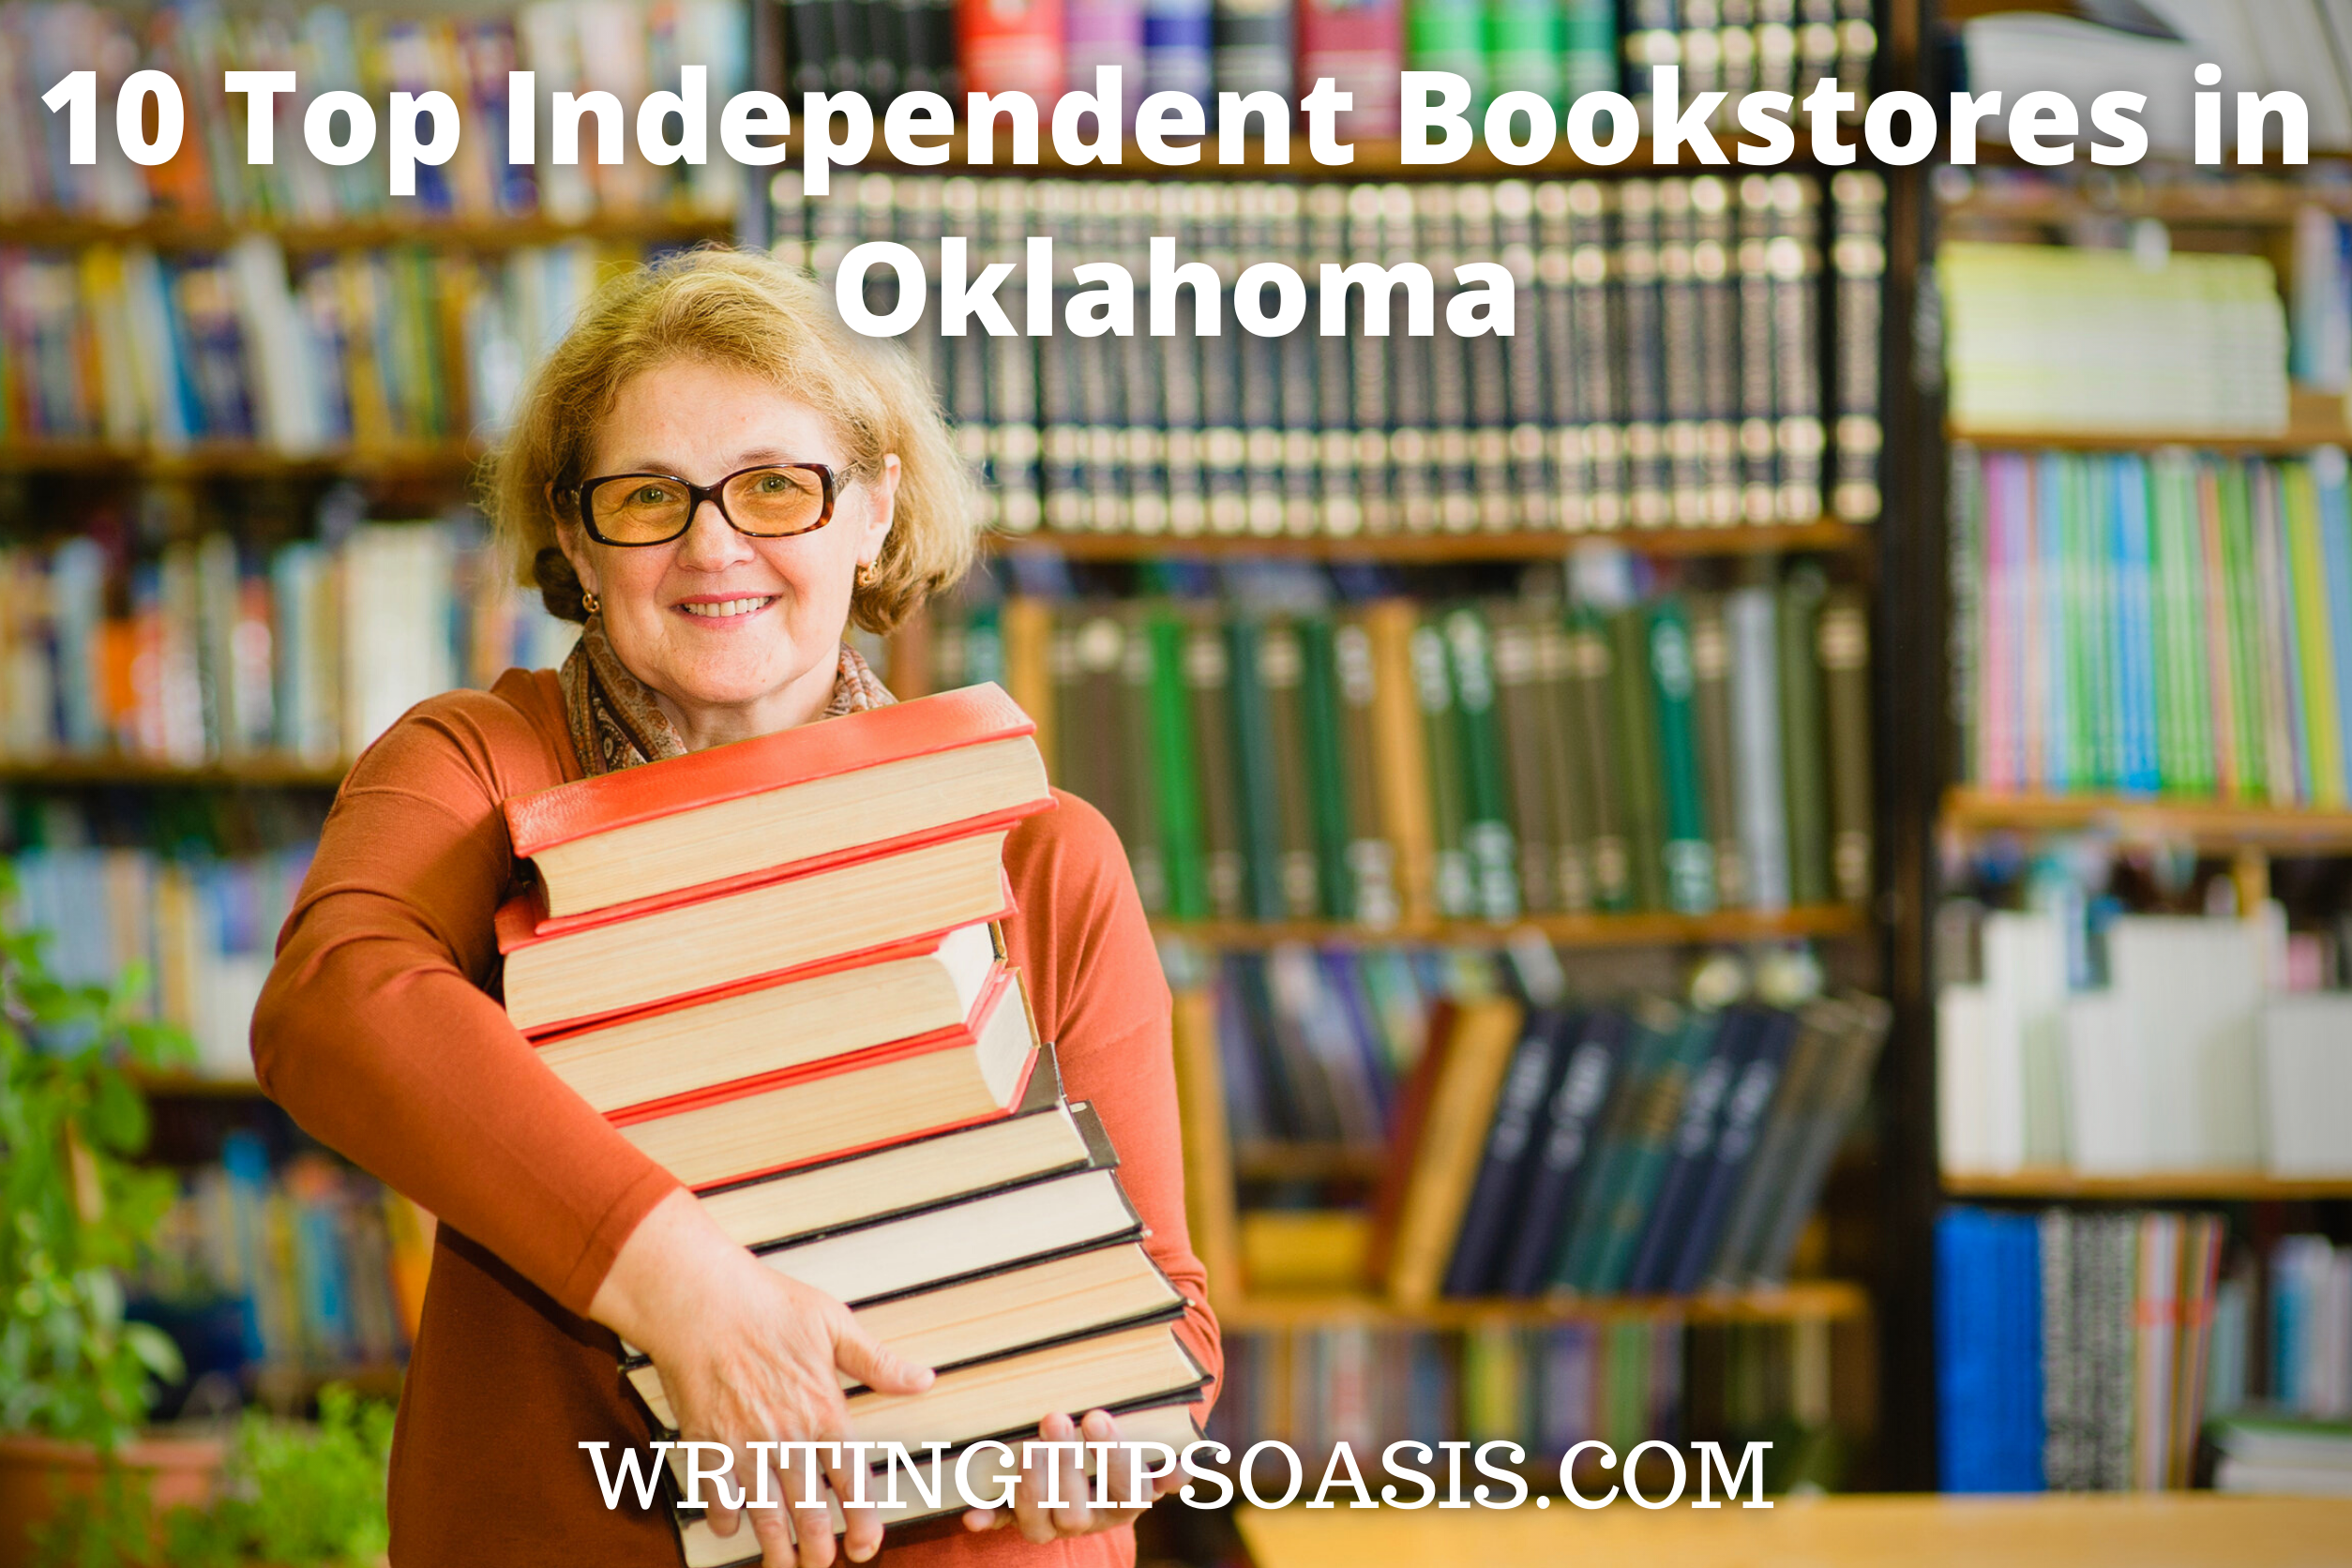 independent bookstores in Oklahoma